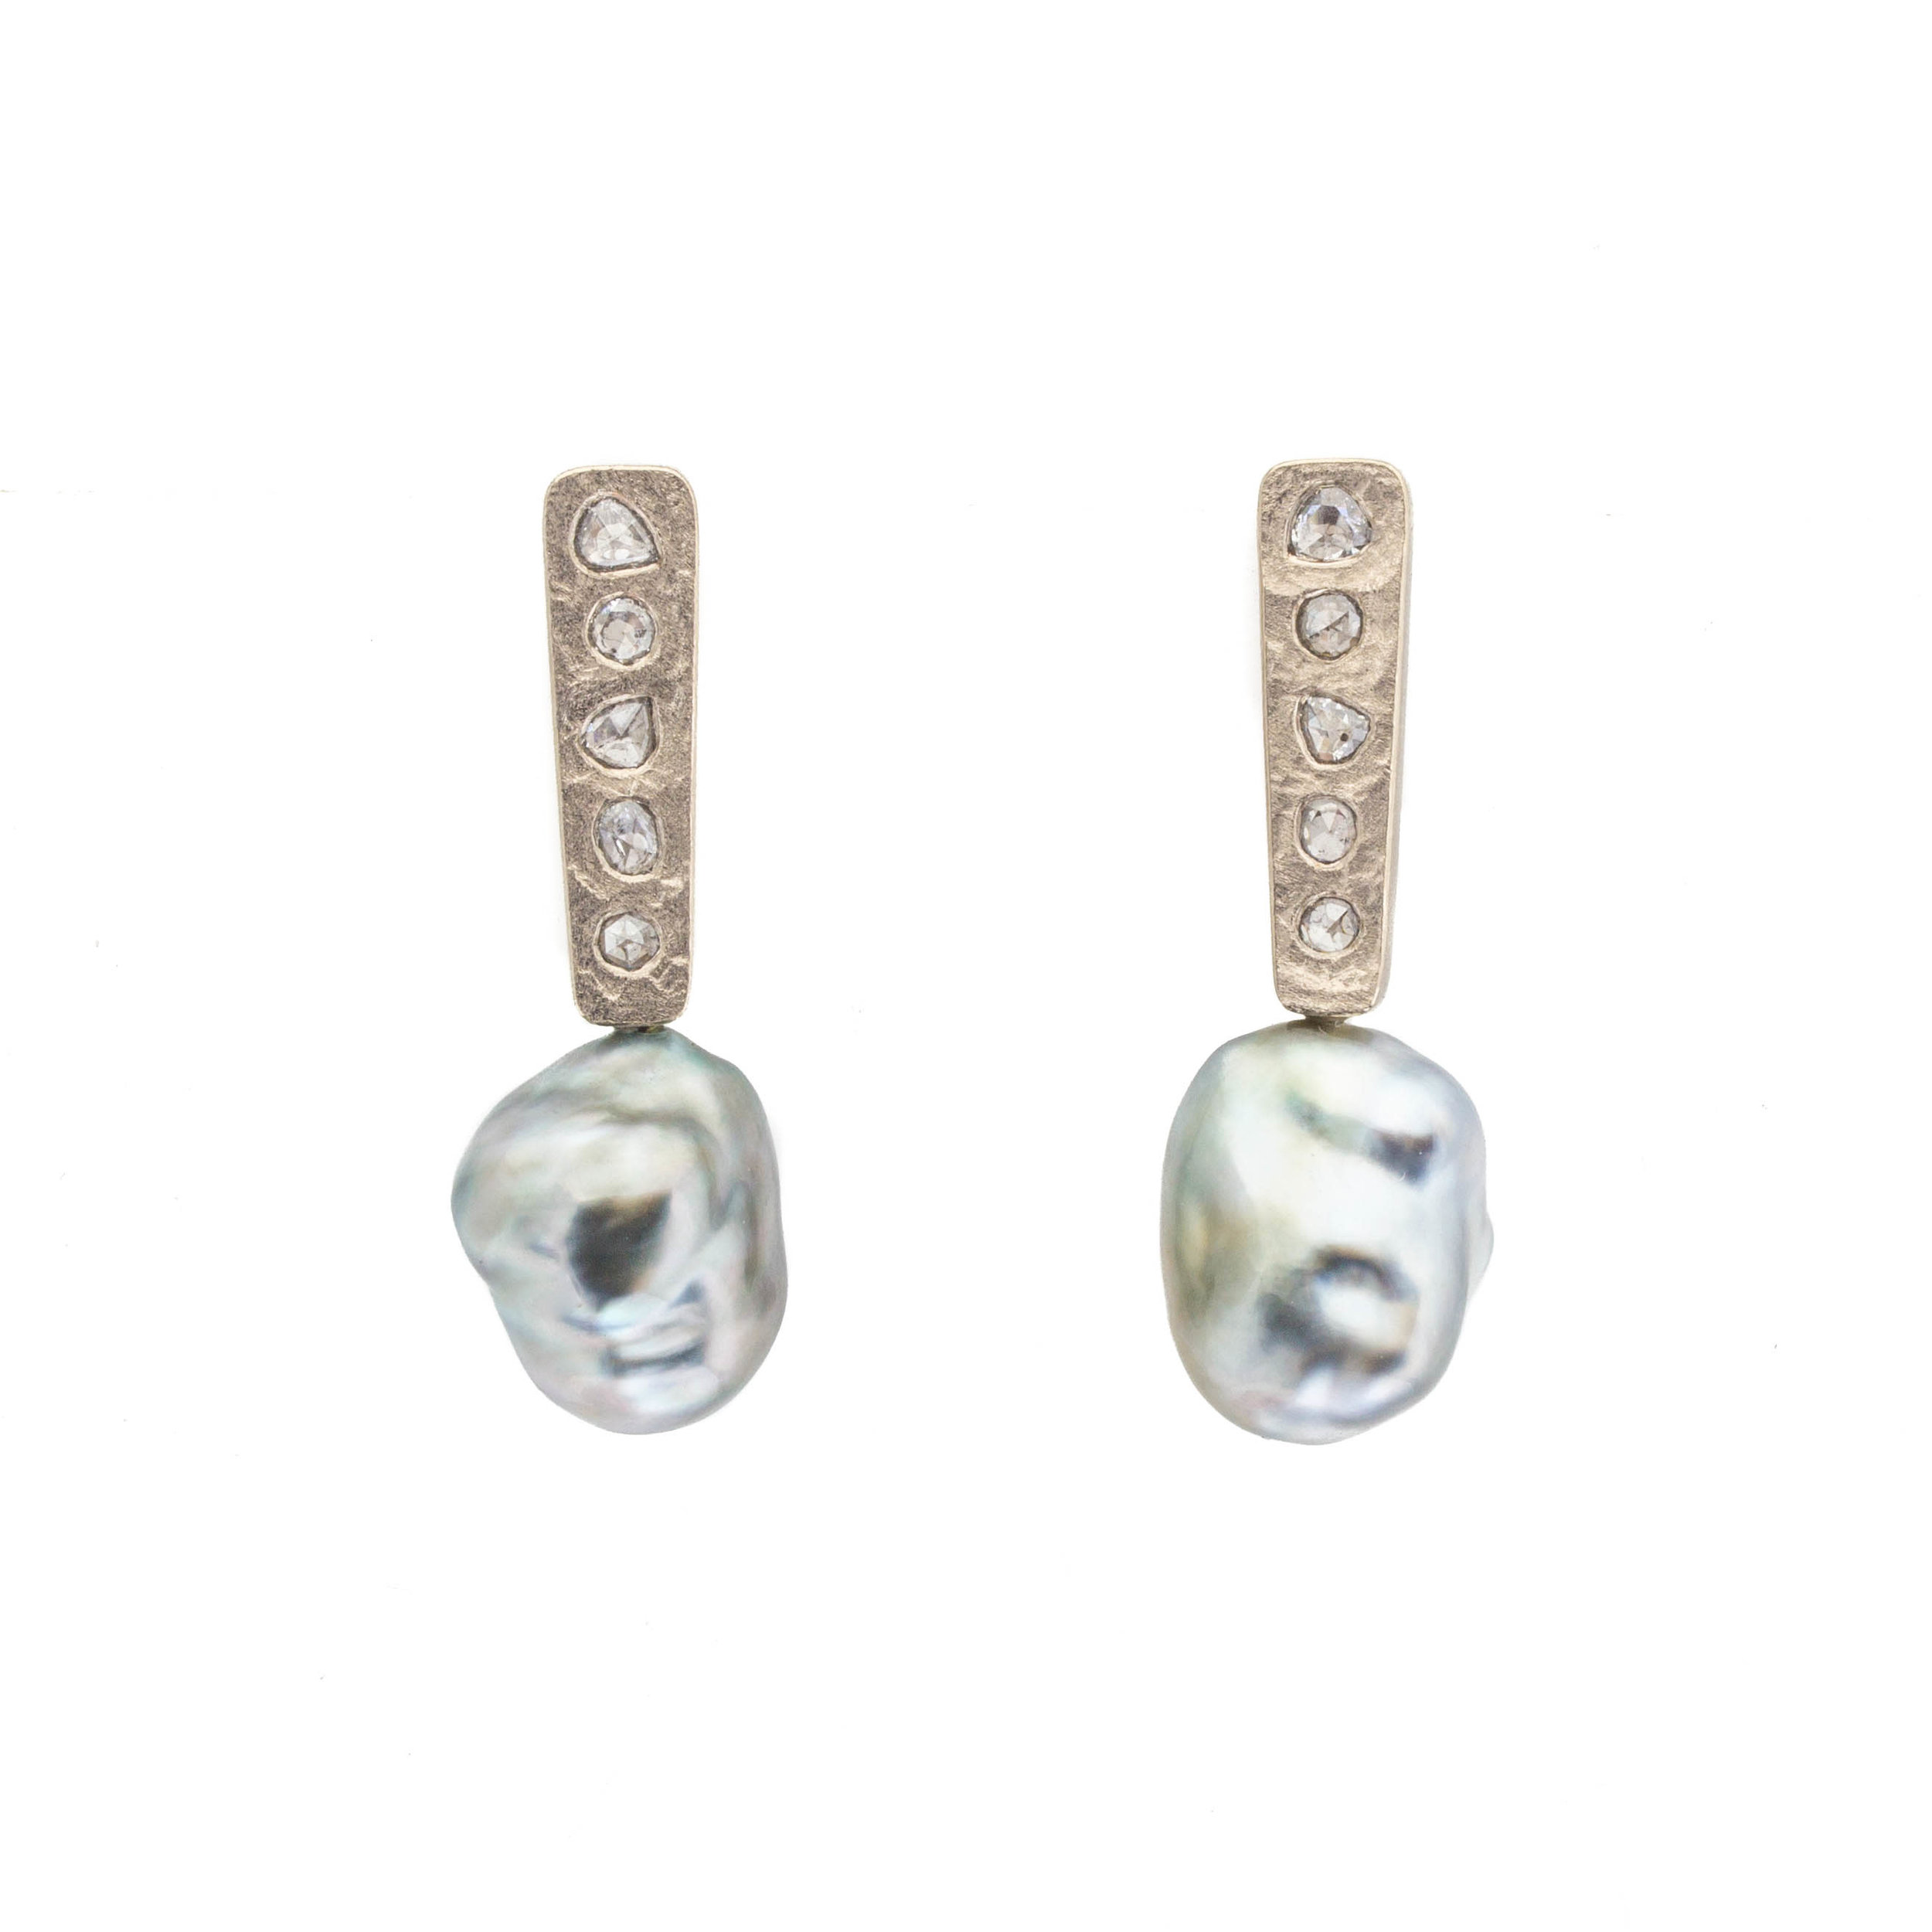 Silver Keshi Pearl Post Dangle Earrings with Salt And Pepper Diamonds in 18k Palladium White Gold